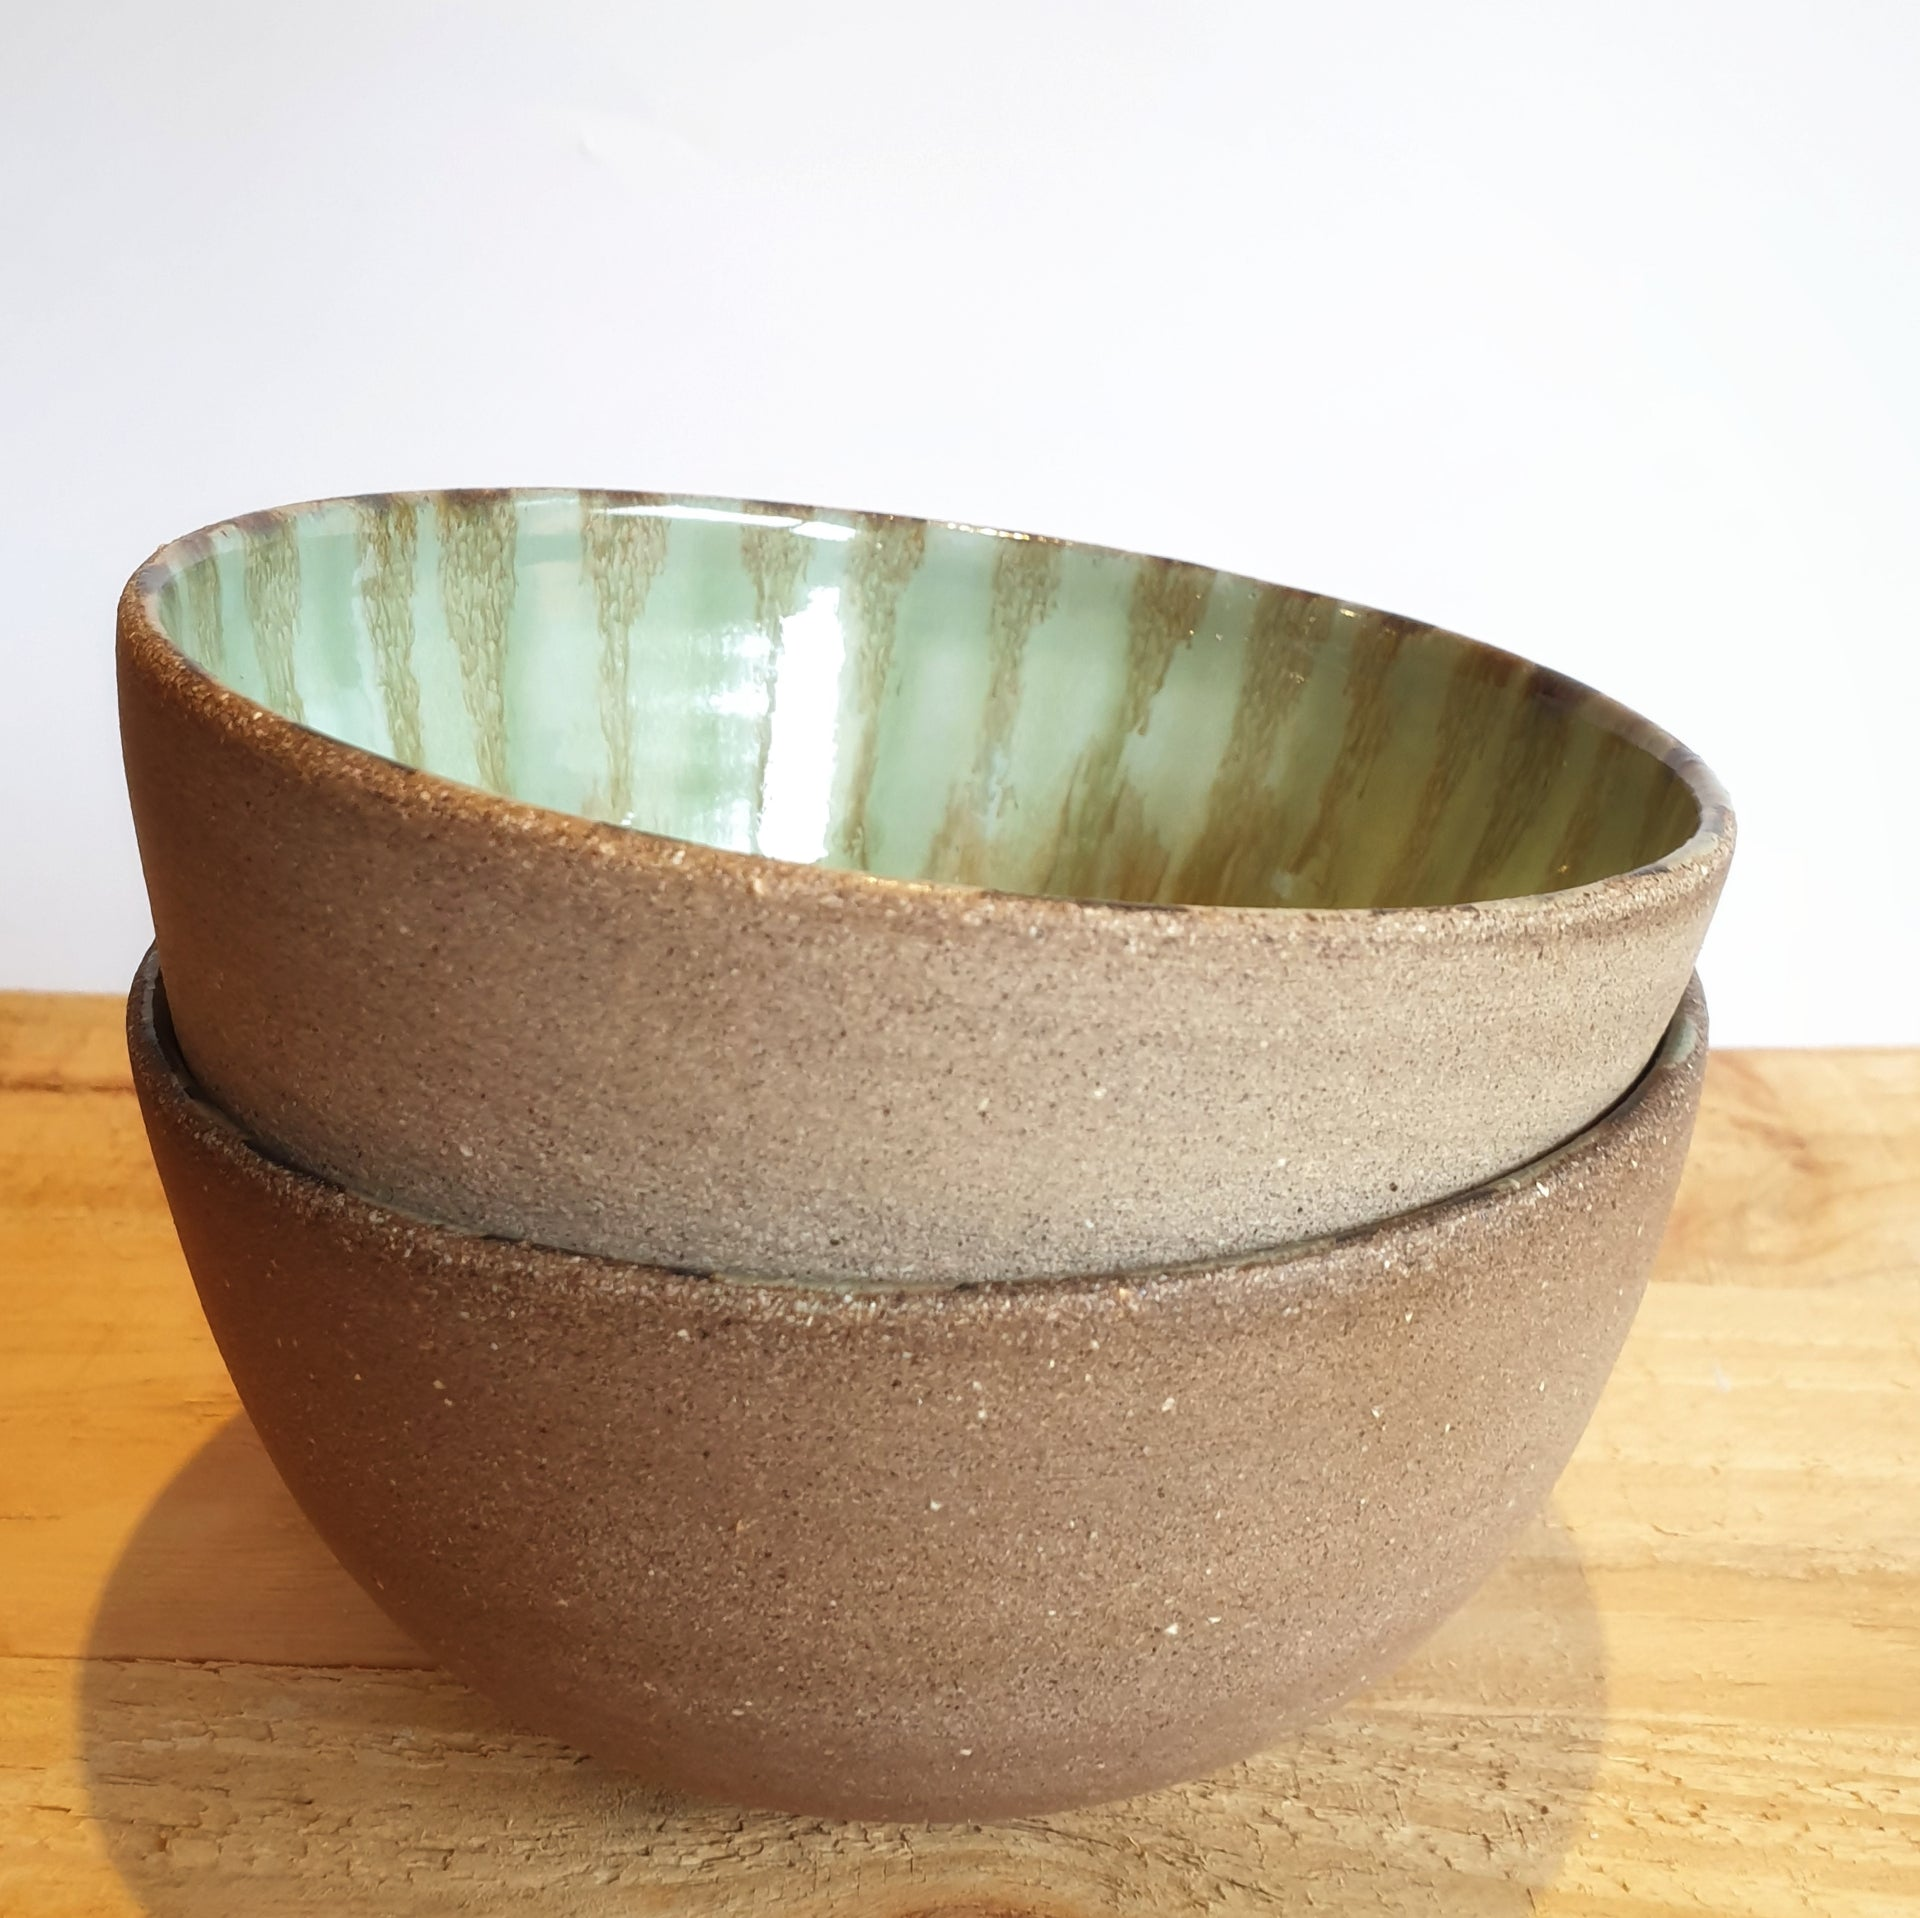 Breakfast bowls, set of 2 (14,5cm diameter & 7cm height) - Nada Spencer Ceramics